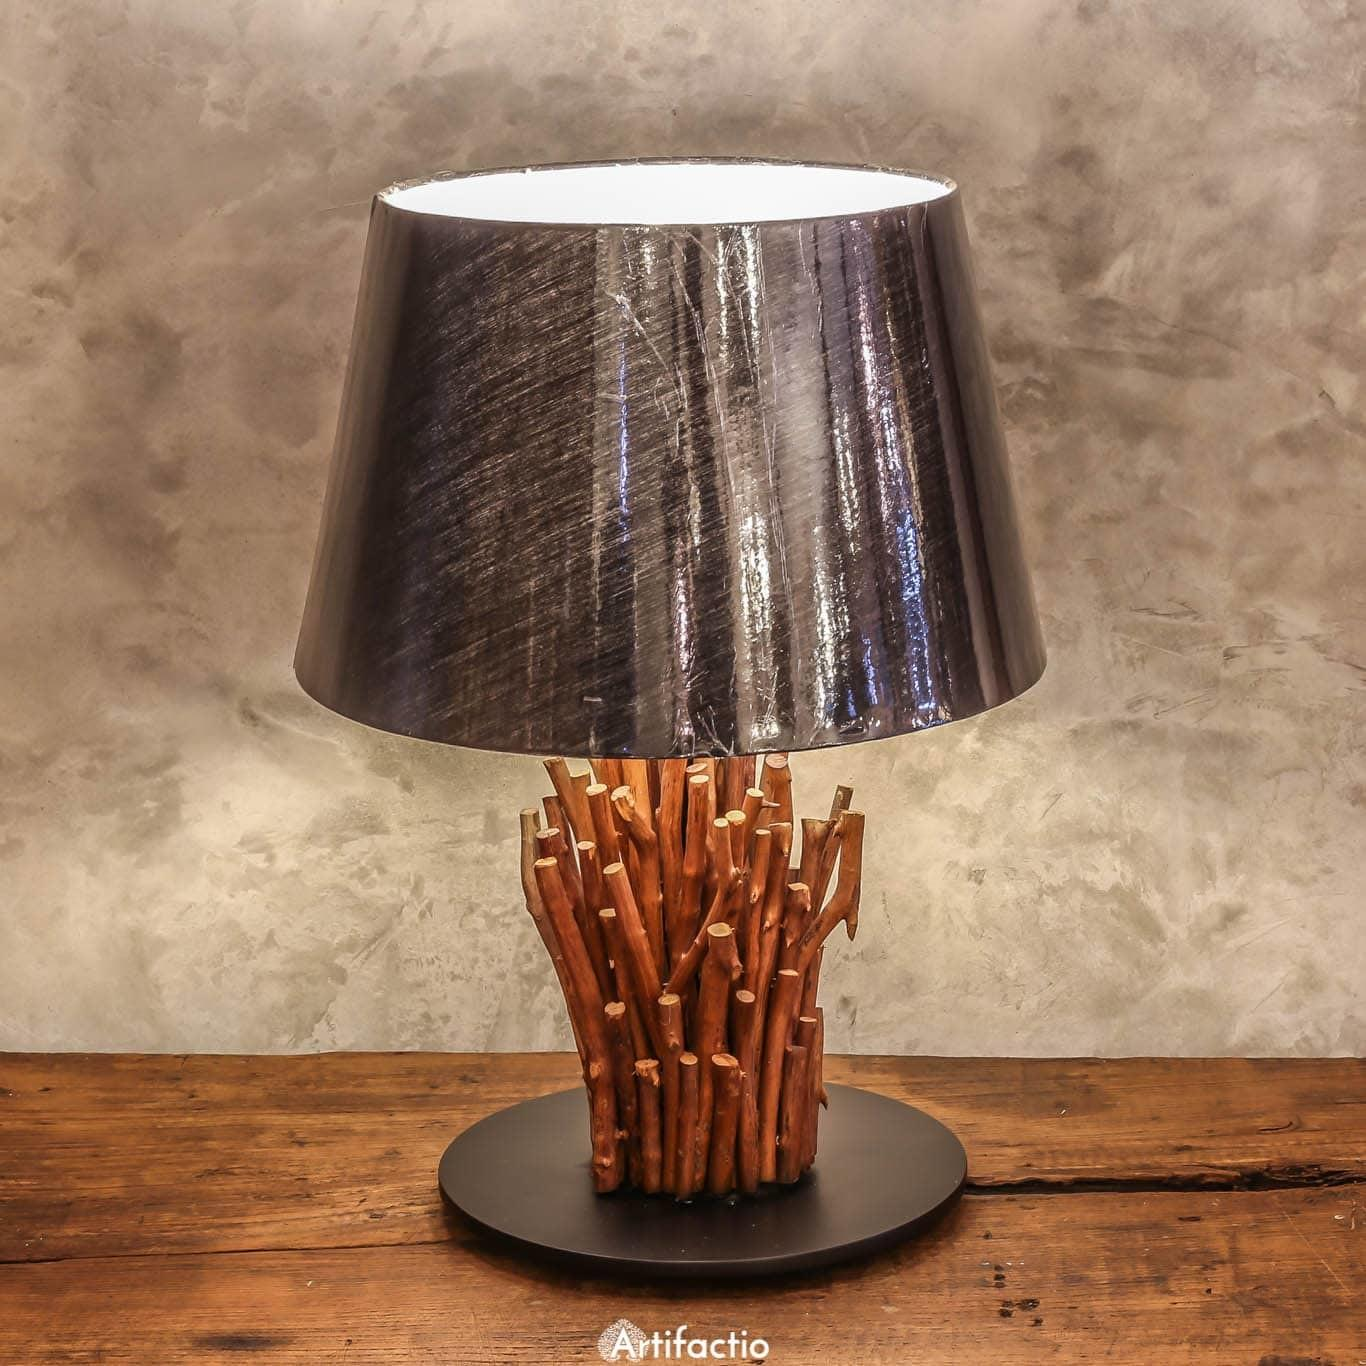 Stunning Driftwood Table Lamp Artifactio